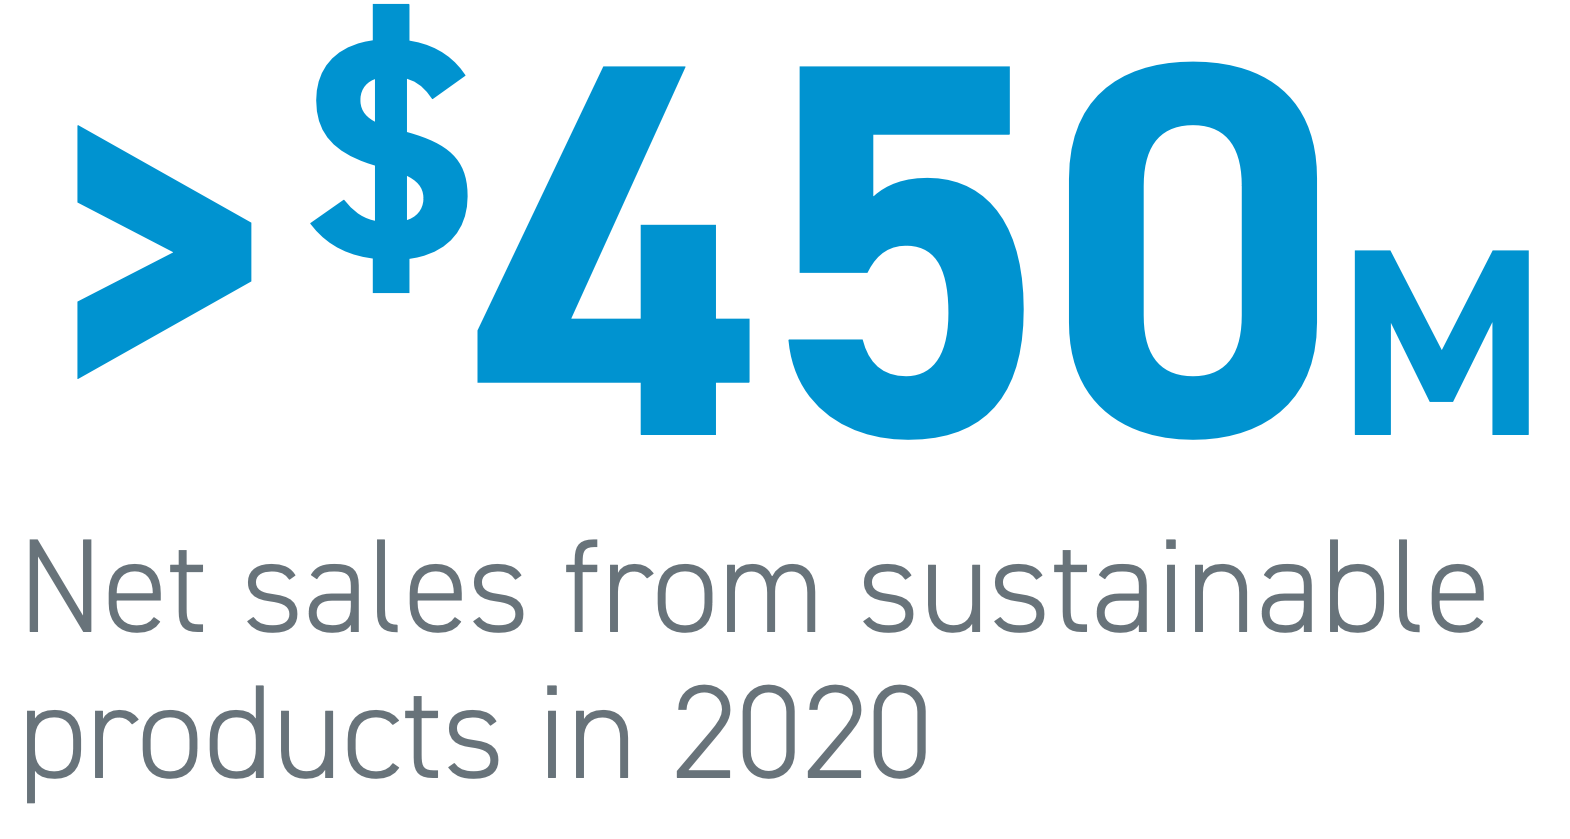 Greater than $450M in net sales from sustainable products in 2020